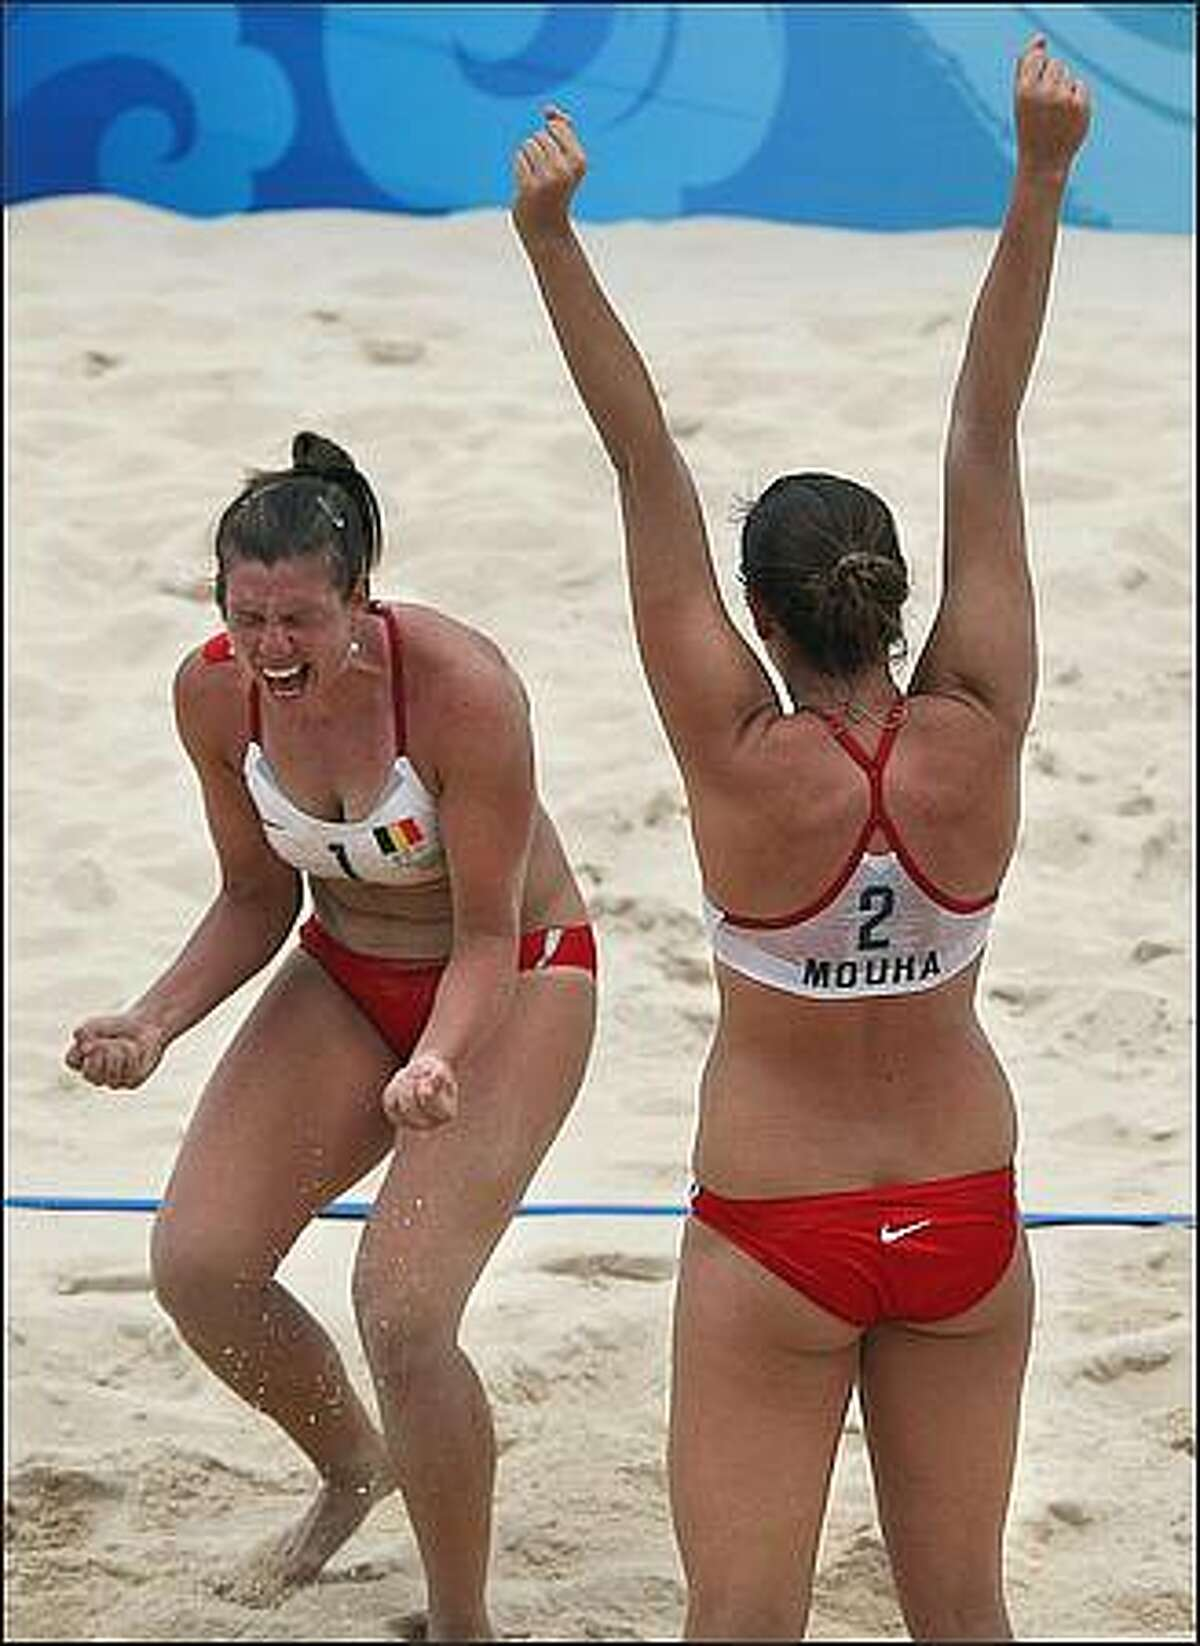 Belgium's Liesbet Van Breedam and Liesbeth Mouha (R) celebrate after beating Switzerland 2-0 in their Women's preliminary beach volleyball match at Beijing's Chaoyang Park Beach Volleyball Ground during the 2008 Beijing Olympic Games. (Photo THOMAS COEX/AFP/Getty Images)